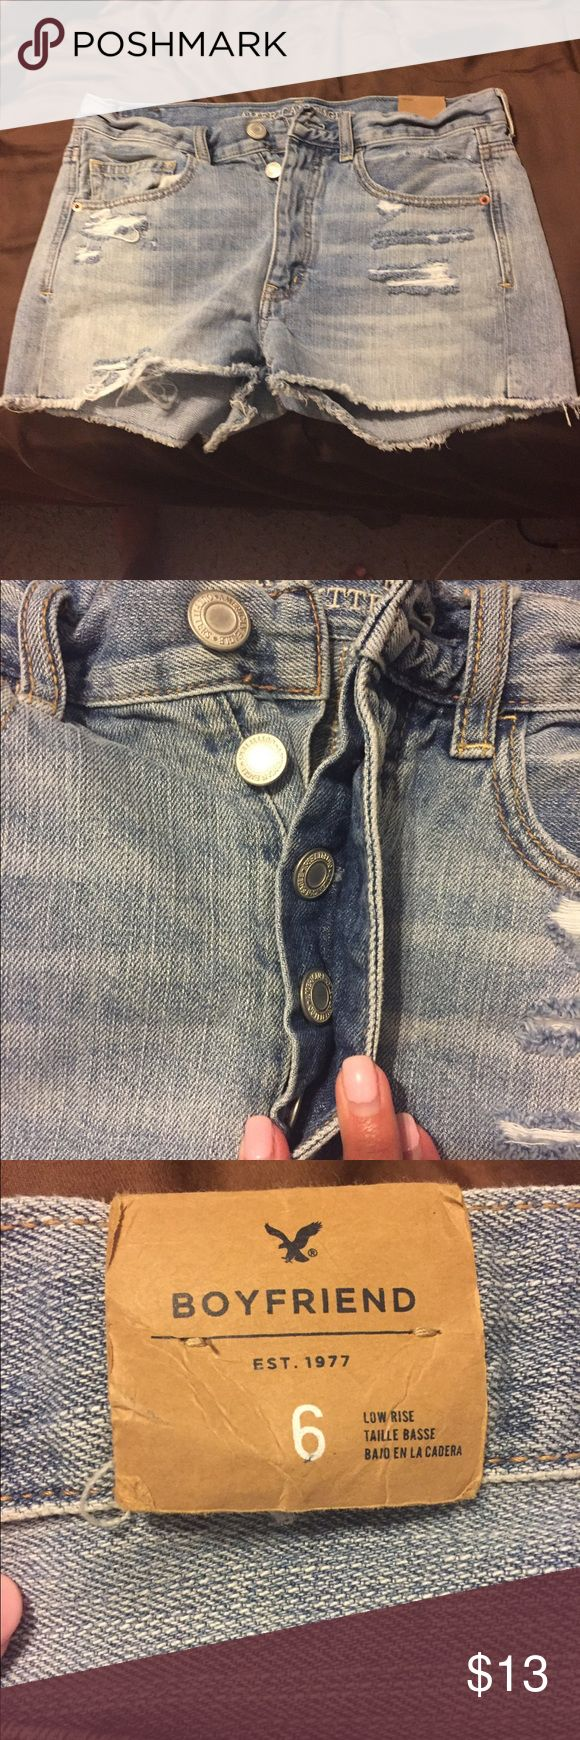 Brand new American Eagle shorts These shorts are the boyfriend style from American Eagle. The retail tag with the price has fell off but the sizing tag is still located on the waist band. These are brand new. American Eagle Outfitters Shorts Jean Shorts